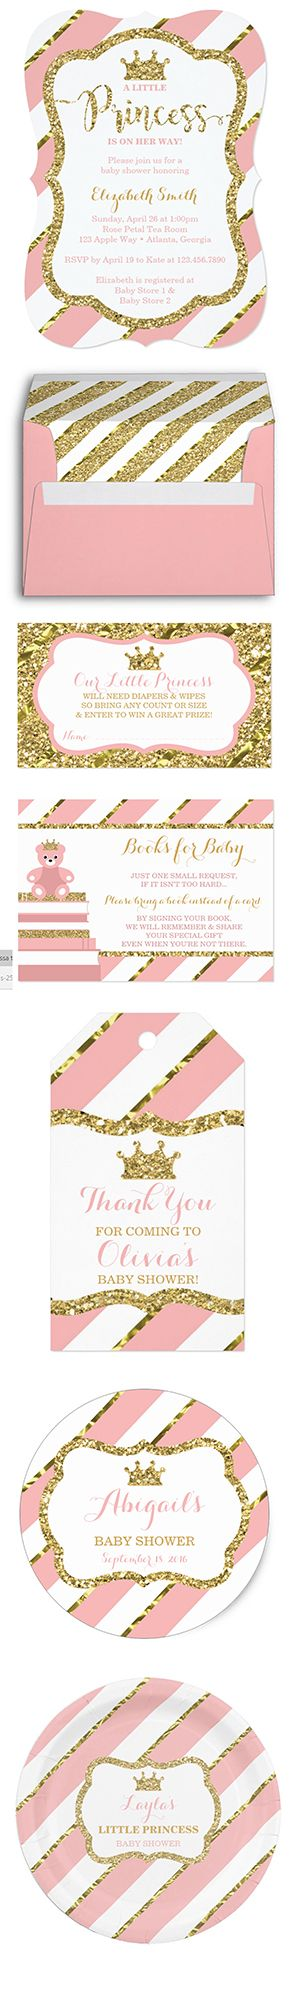 Little Princess Baby Shower in Pink and Gold by DeReimer DeSign